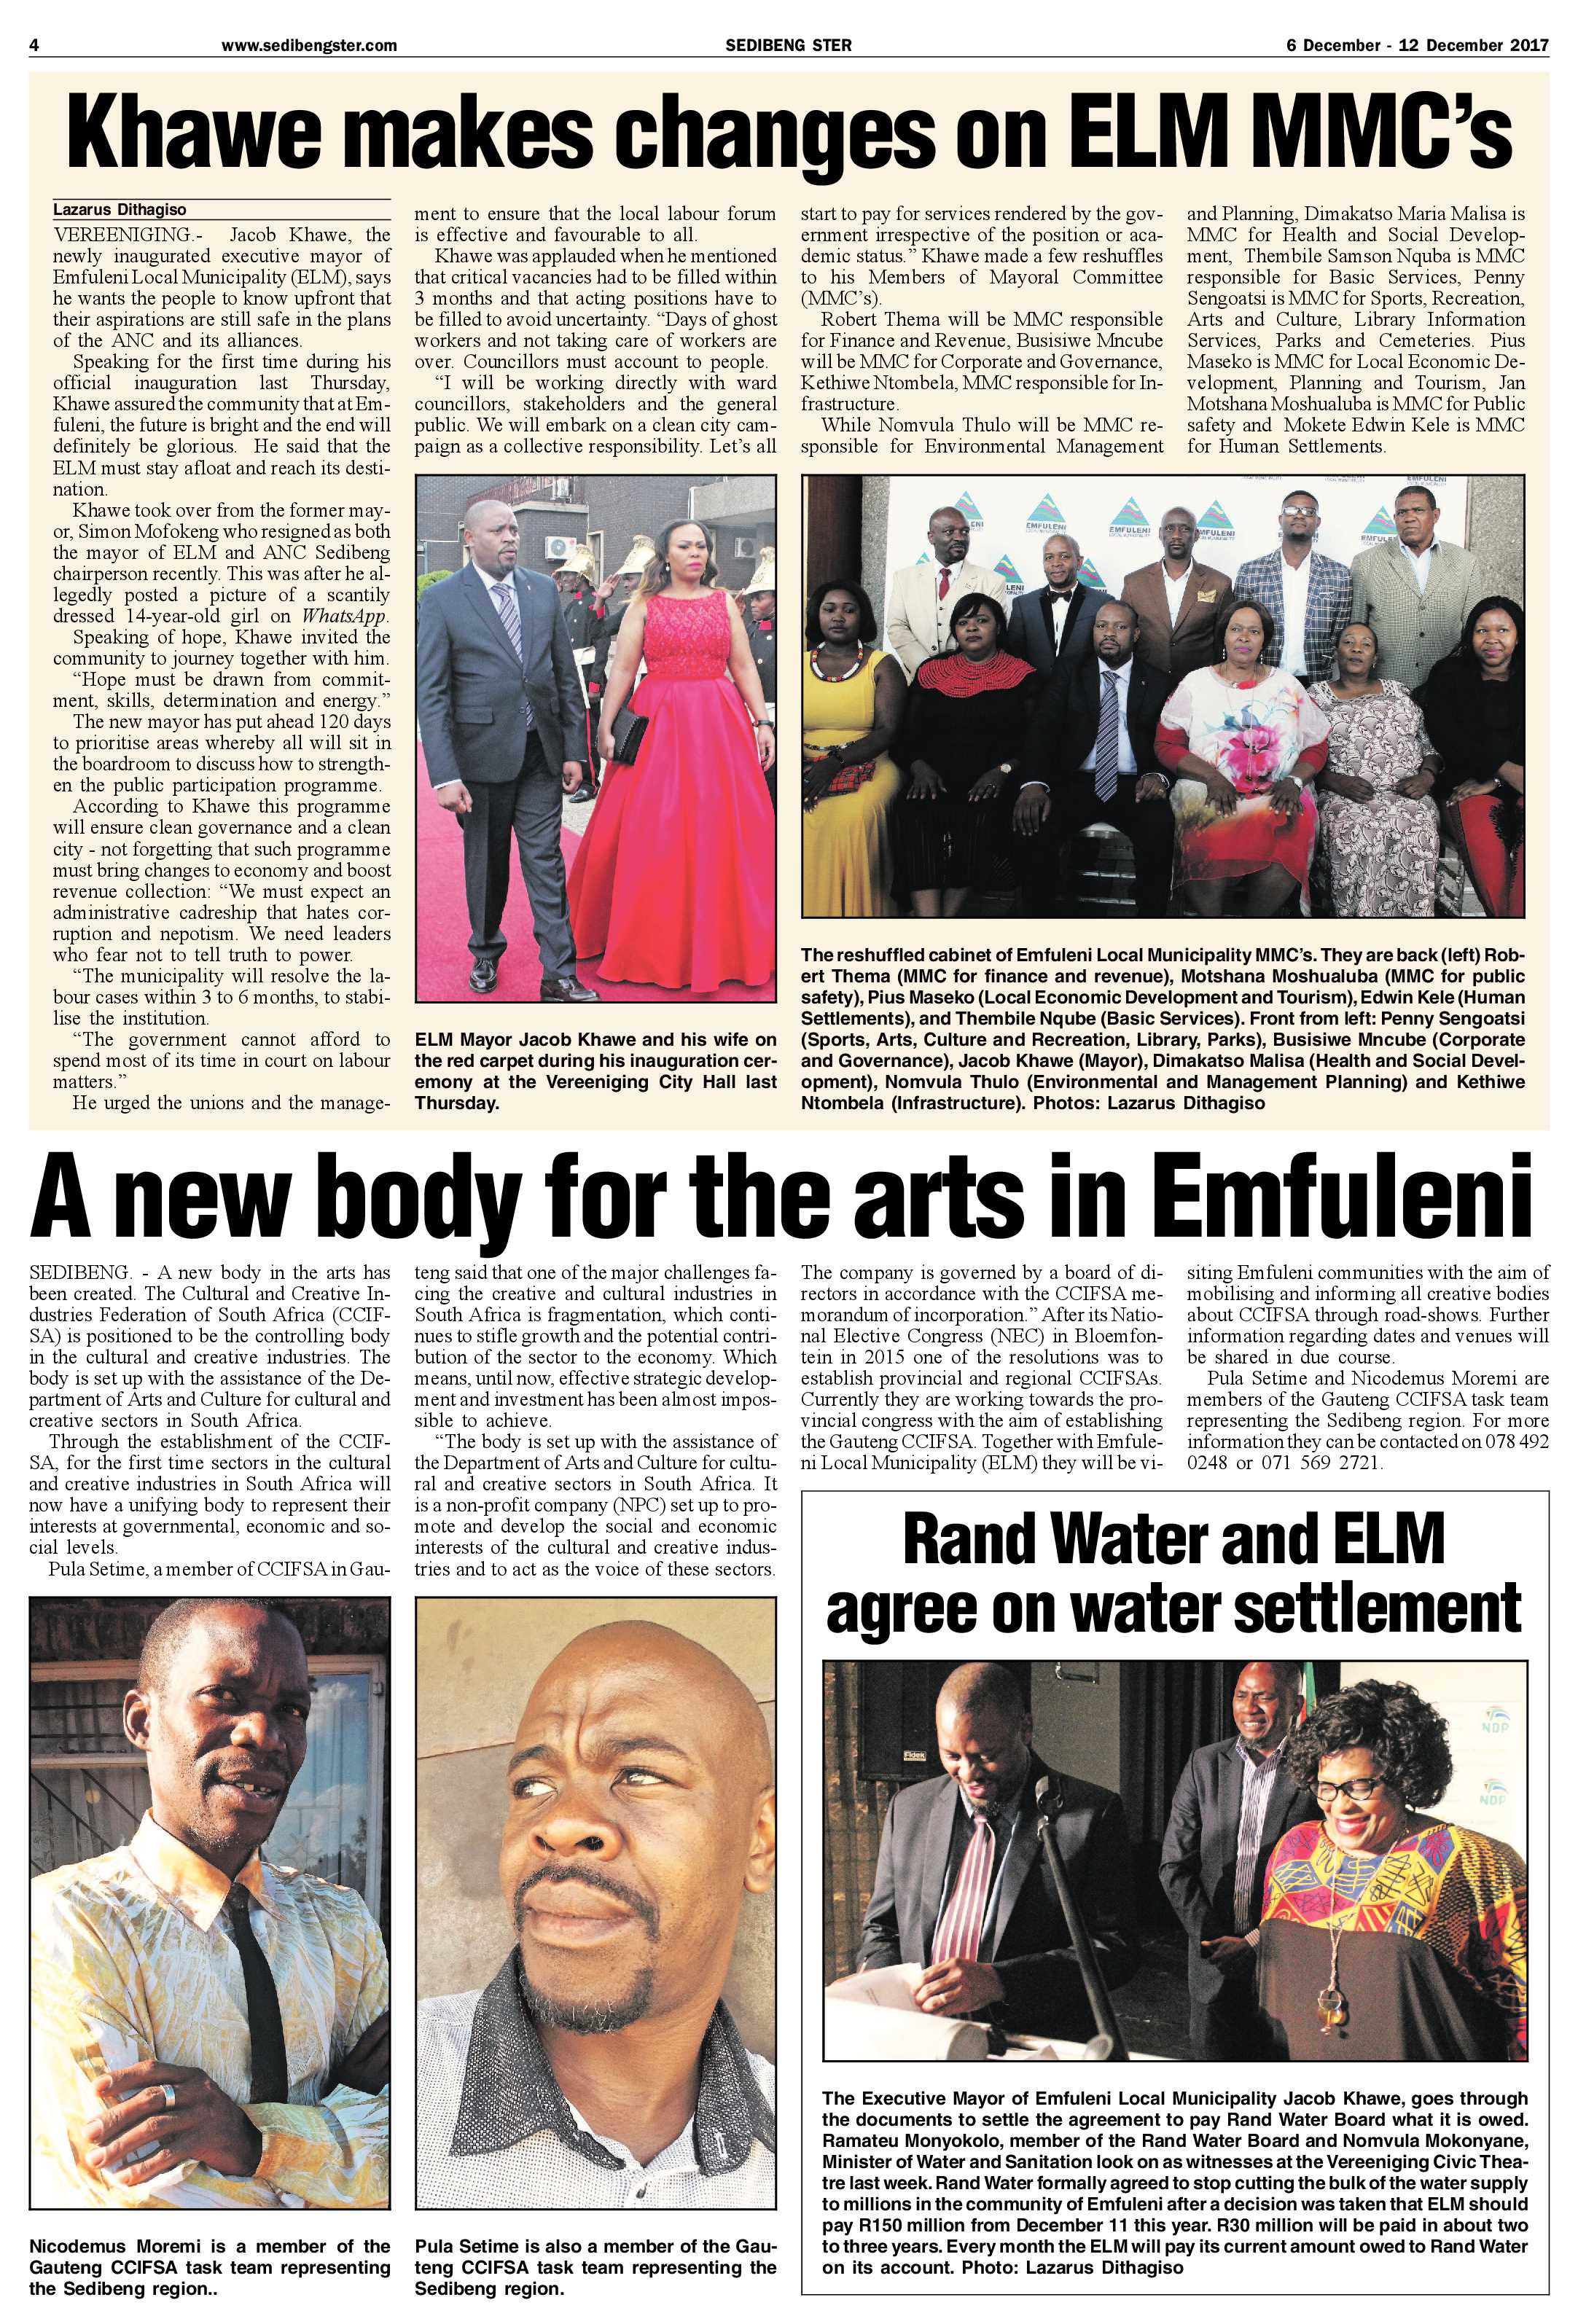 sedibeng-ster-6-12-december-2017-epapers-page-4